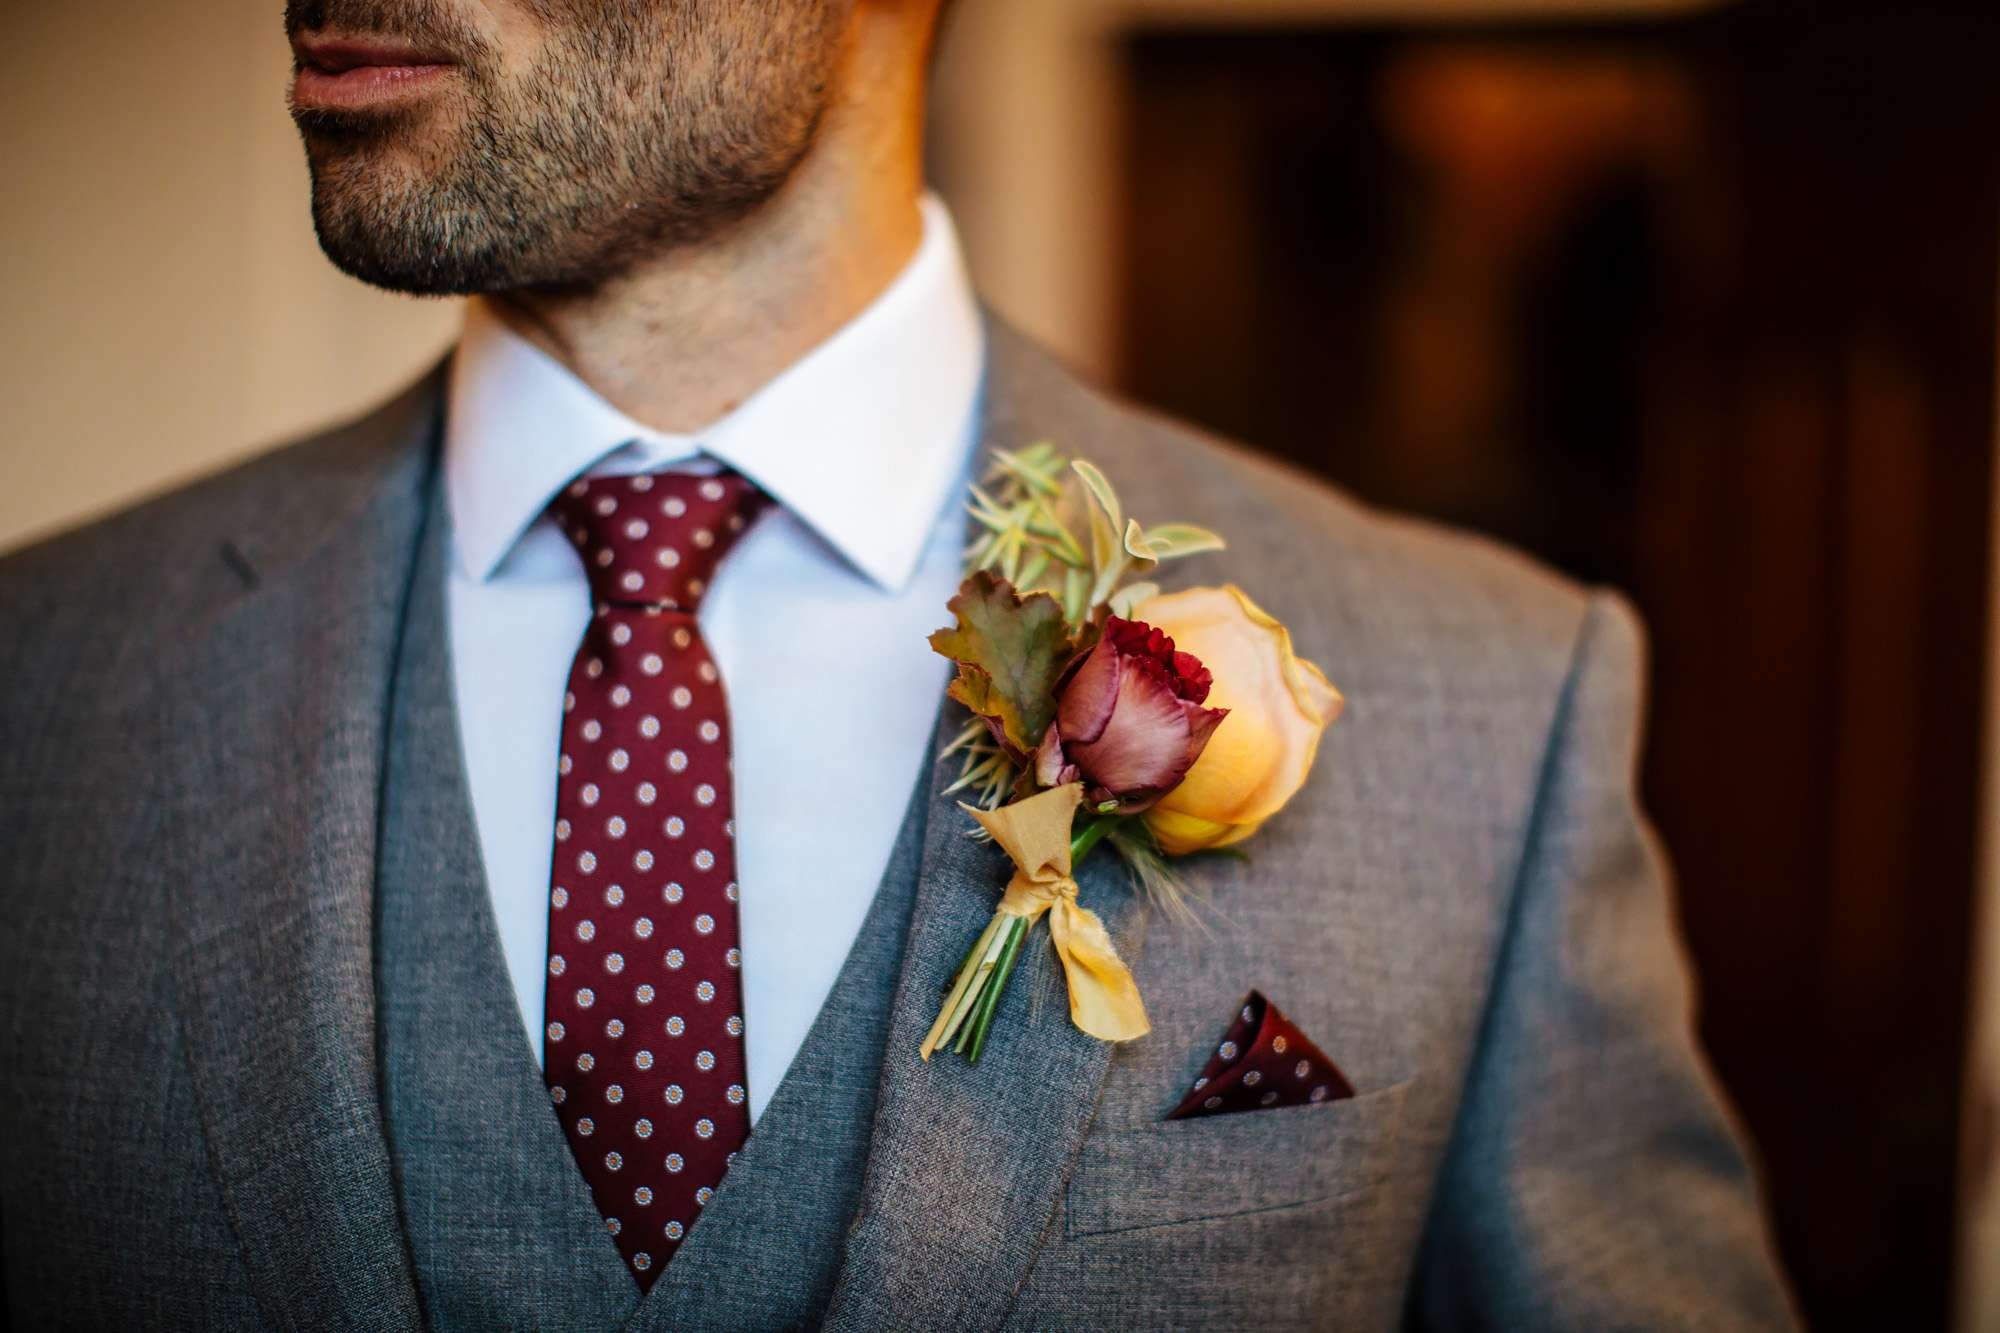 Grooms suit details on his wedding day